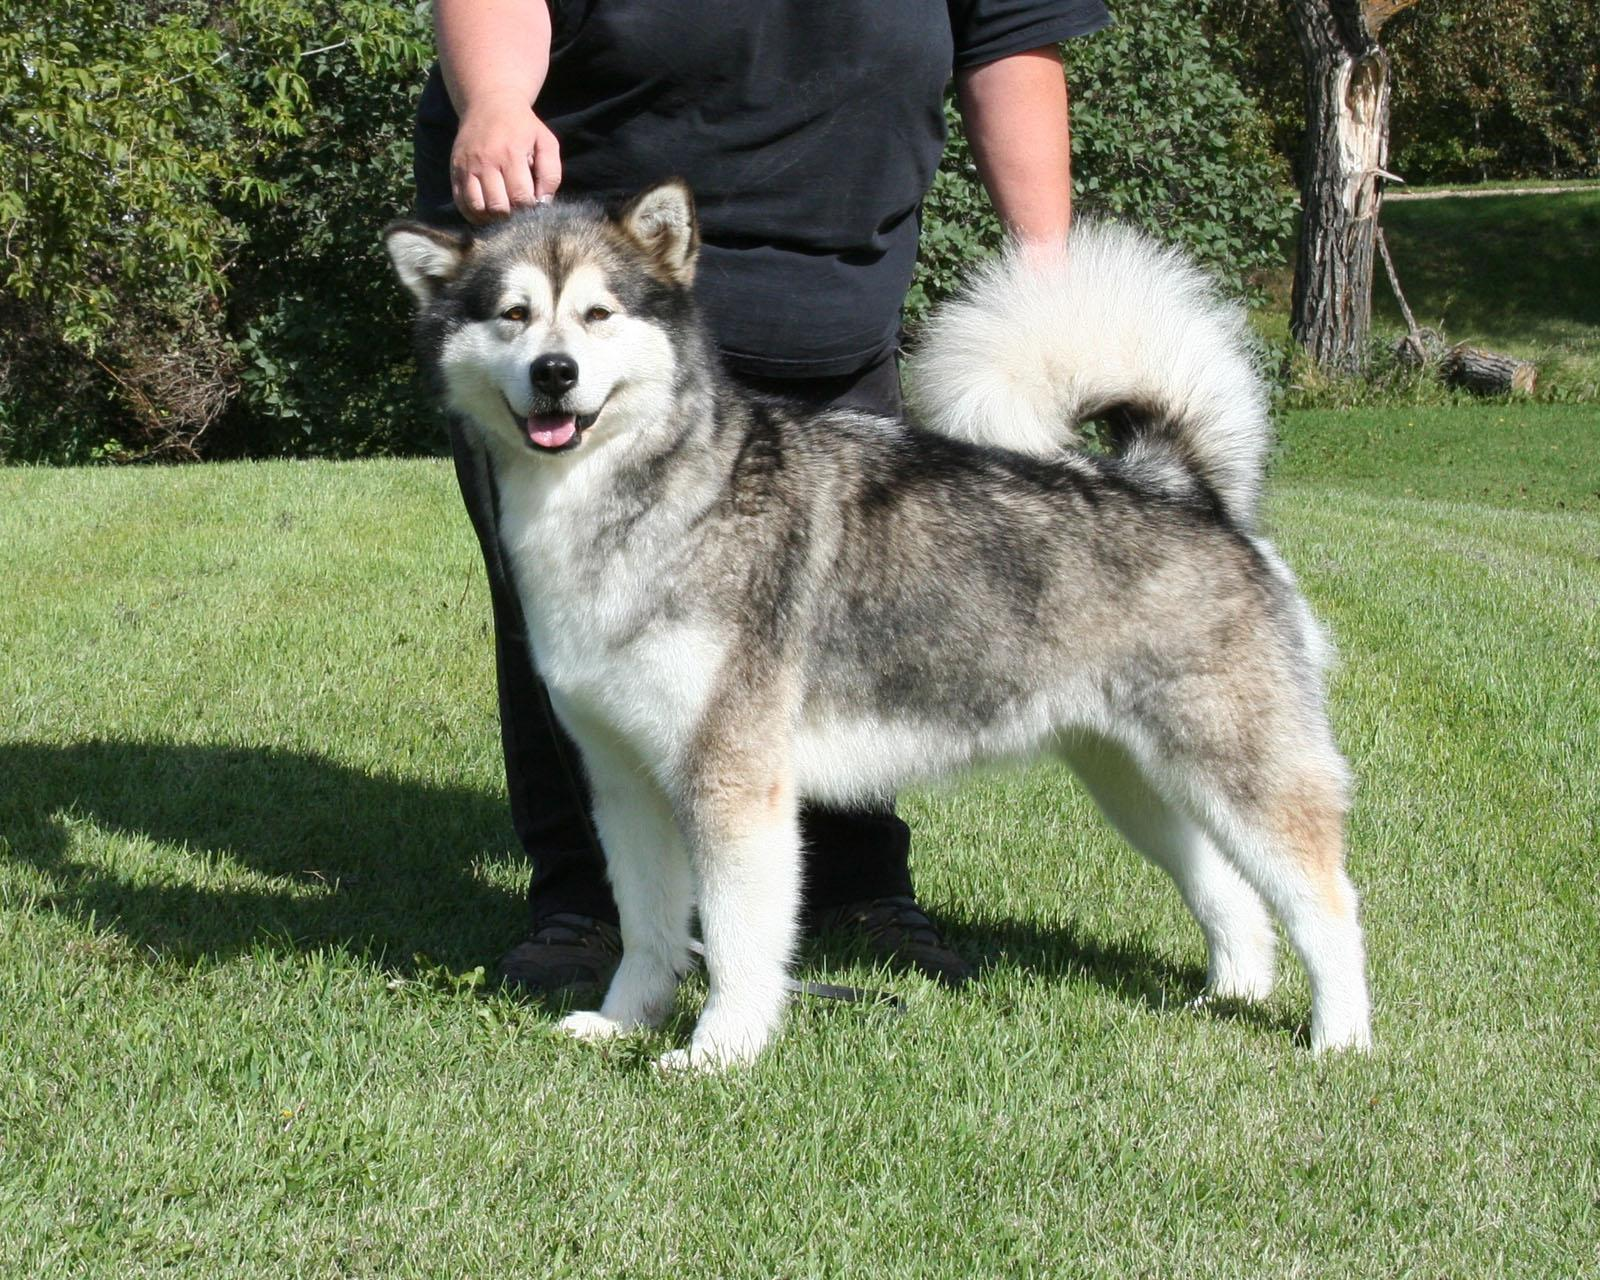 alaskan malamute pictures puppies diet breeding. Black Bedroom Furniture Sets. Home Design Ideas